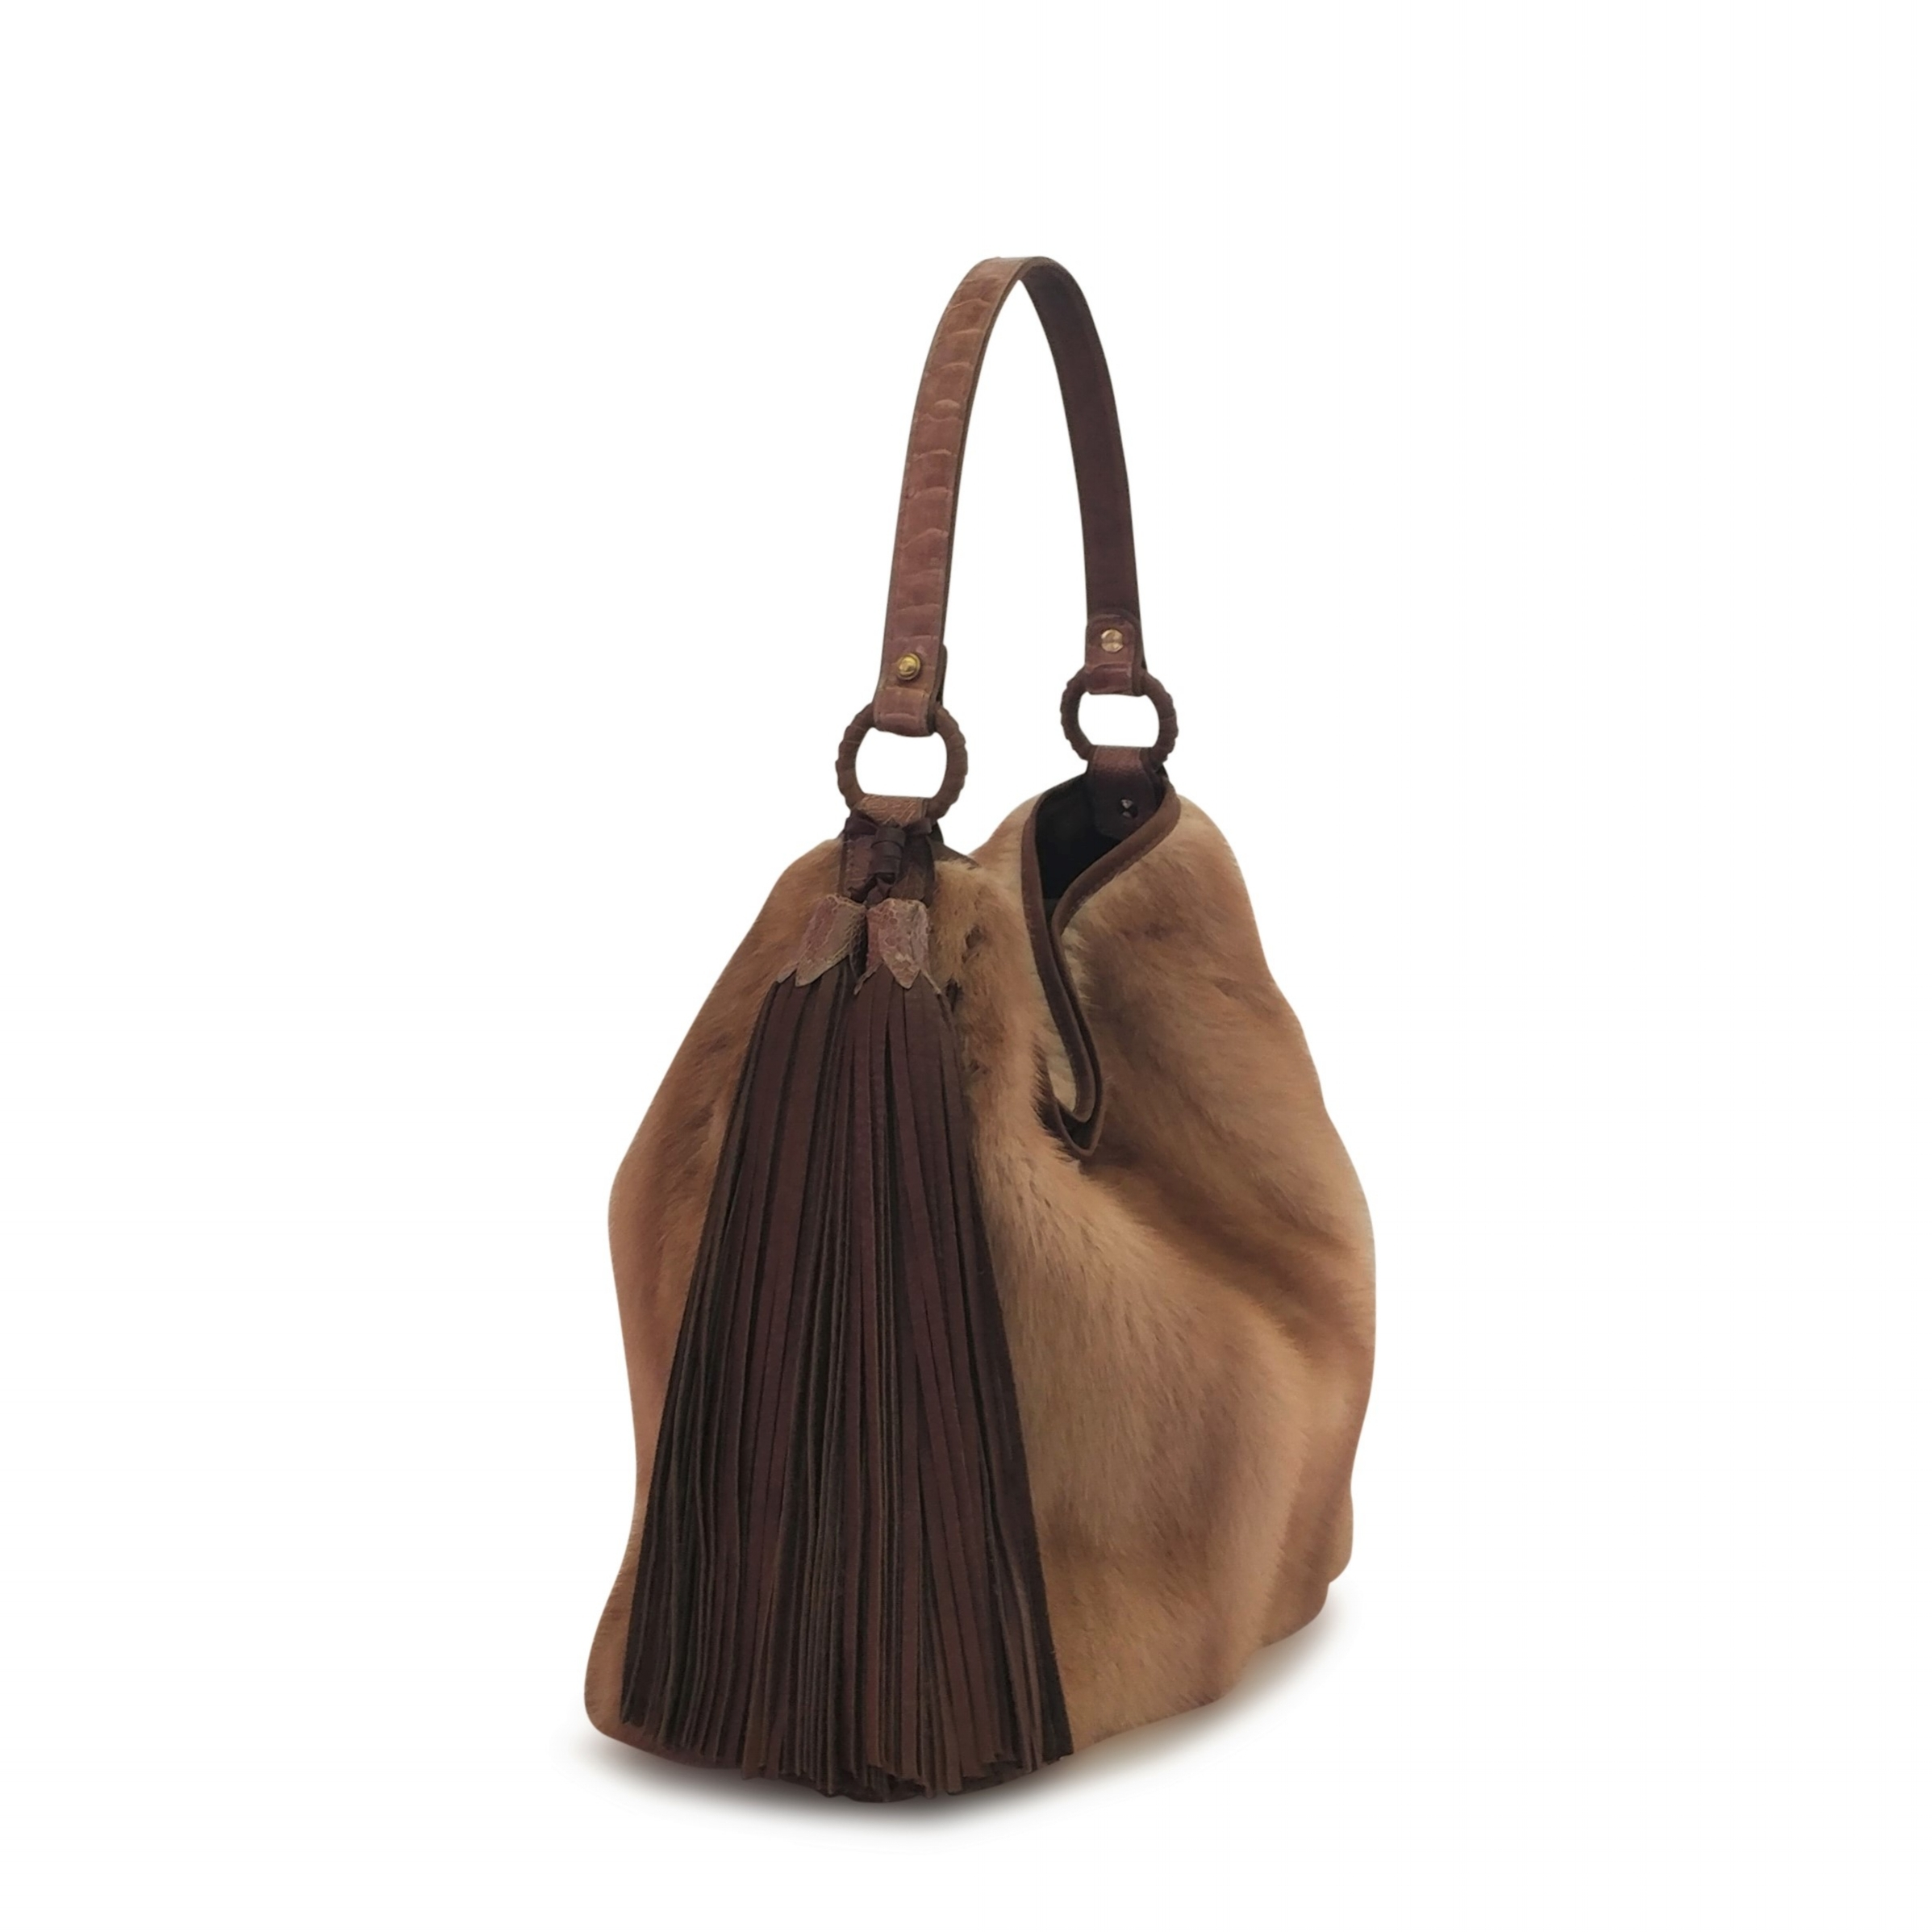 WHAT'S YOUR DREAM? - TG wanted a bag created from a mink coat her mother had given her long ago. The only one of its kind.